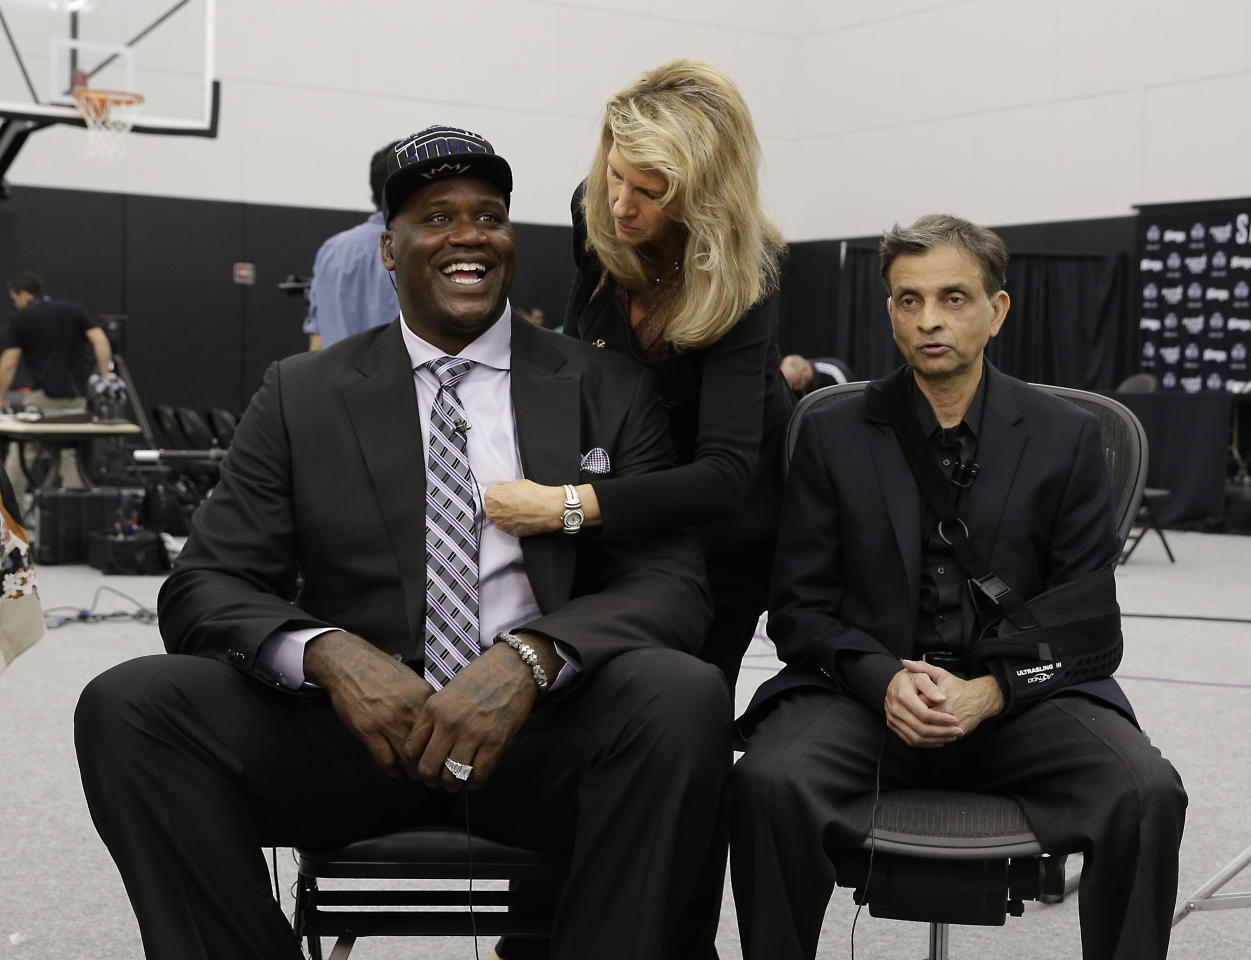 Shaquille O'Neal smiles as makeup artist Jeanne Marie straightens his shirt before a television interview with Sacramento Kings majority owner Vivek Ranadive, right, in Sacramento, Calif., Tuesday, Sept. 24, 2013. O'Neal apologized to all Sacramento Kings fans for his verbal jabs during his playing career and is promising to restore the franchise to its winning ways as a minority owner. (AP Photo/Rich Pedroncelli)